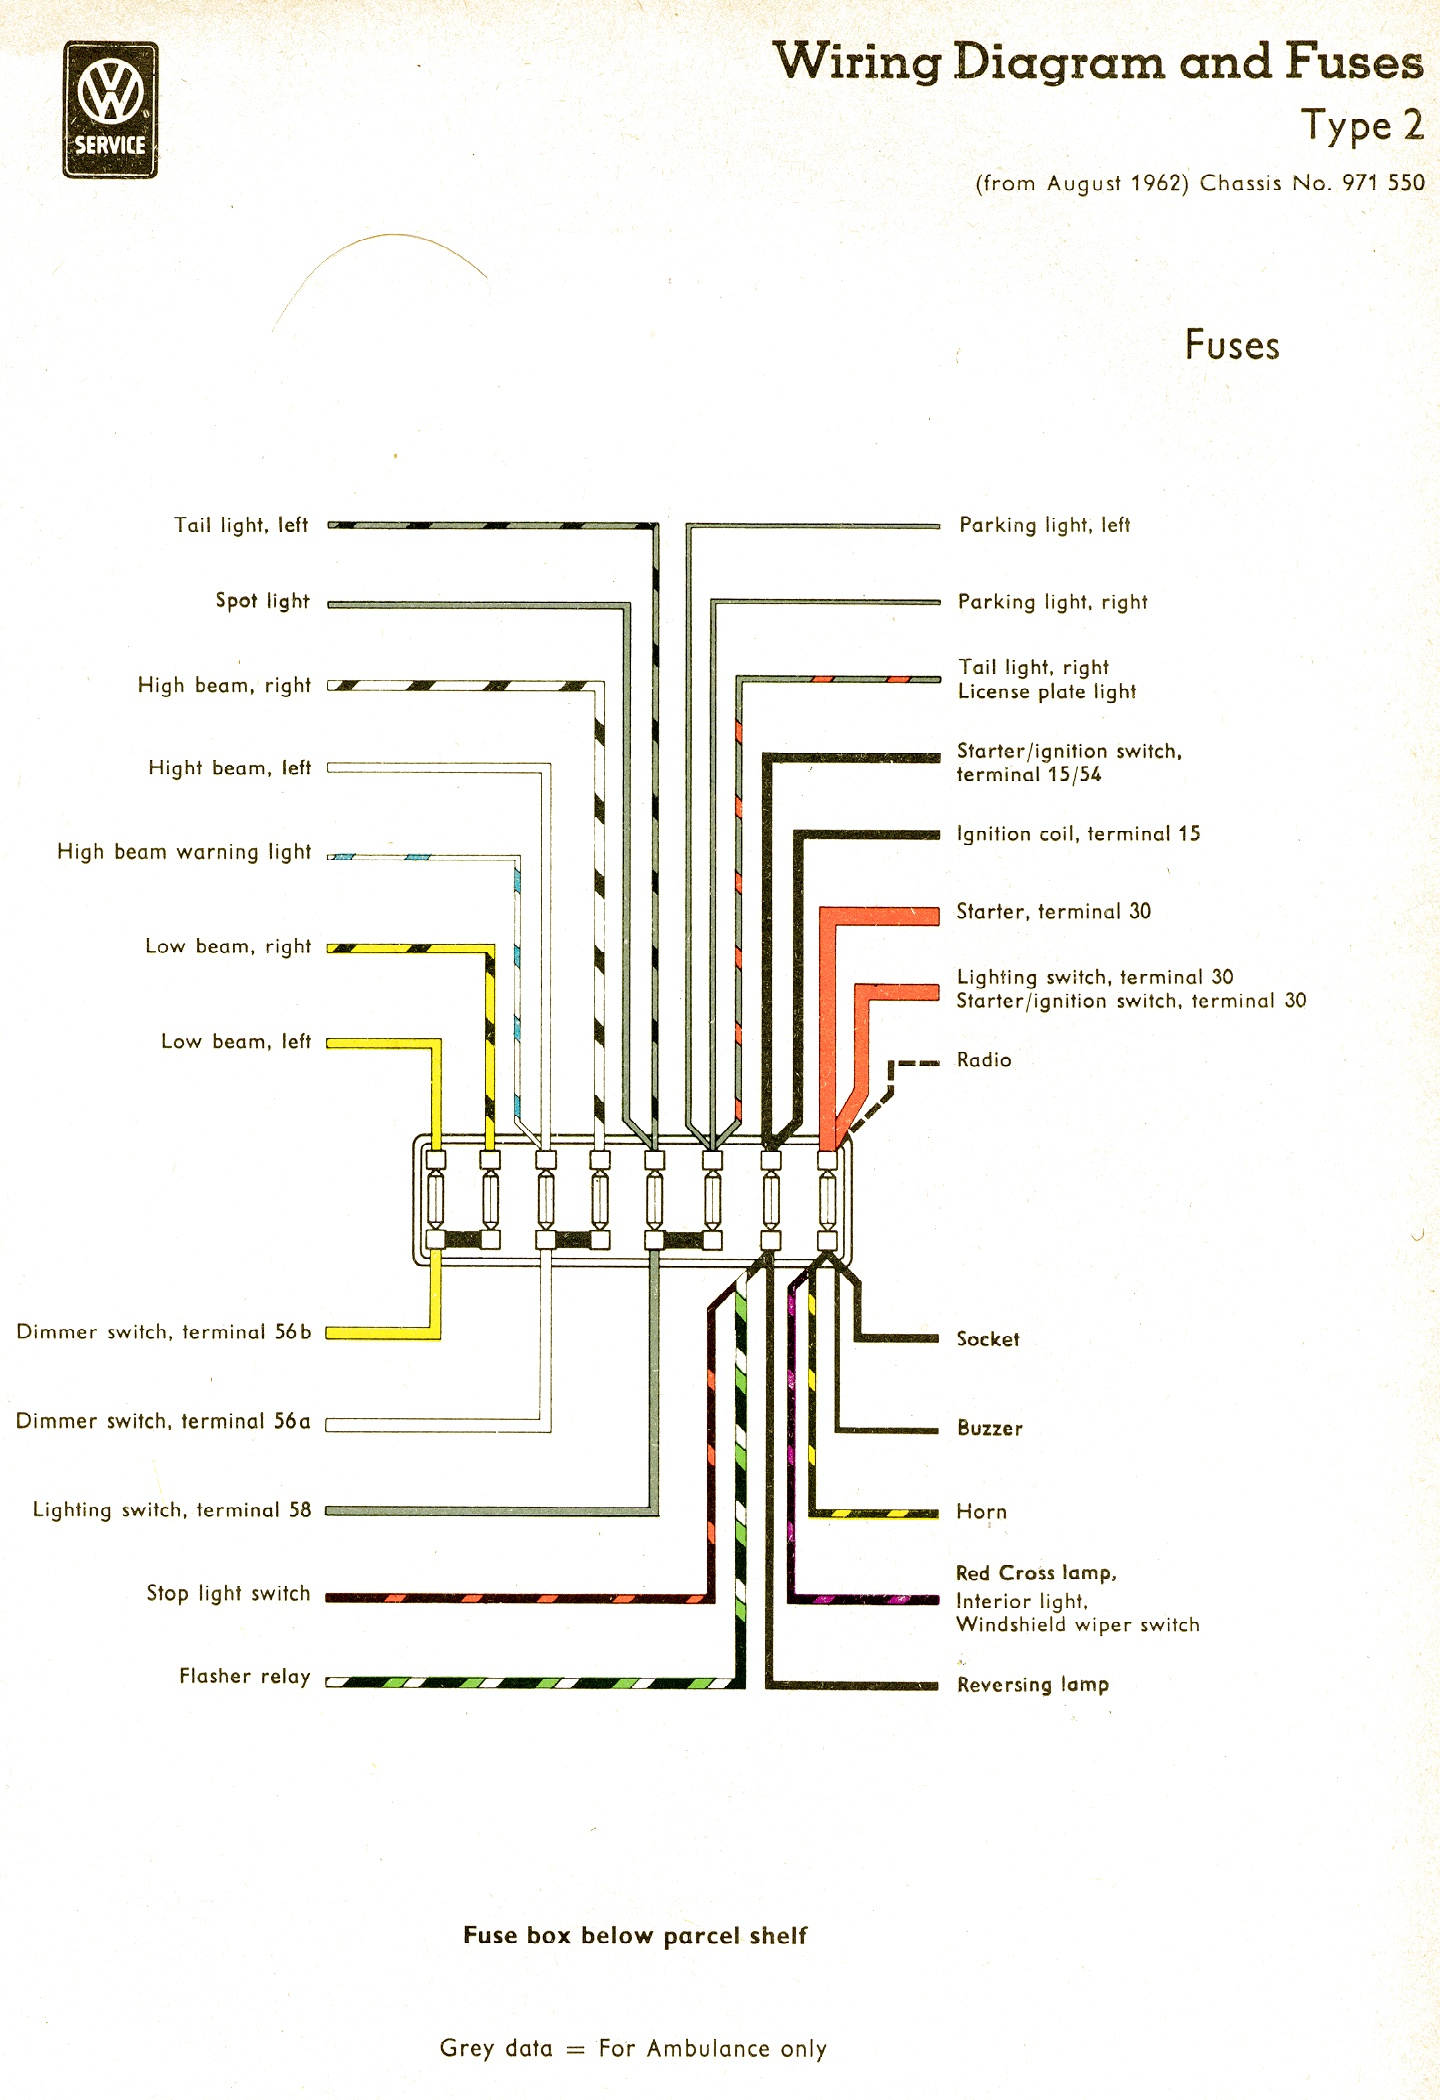 bus 62 fuse fuse panel wiring diagram fuse wiring diagrams instruction car fuse box wiring diagram at aneh.co